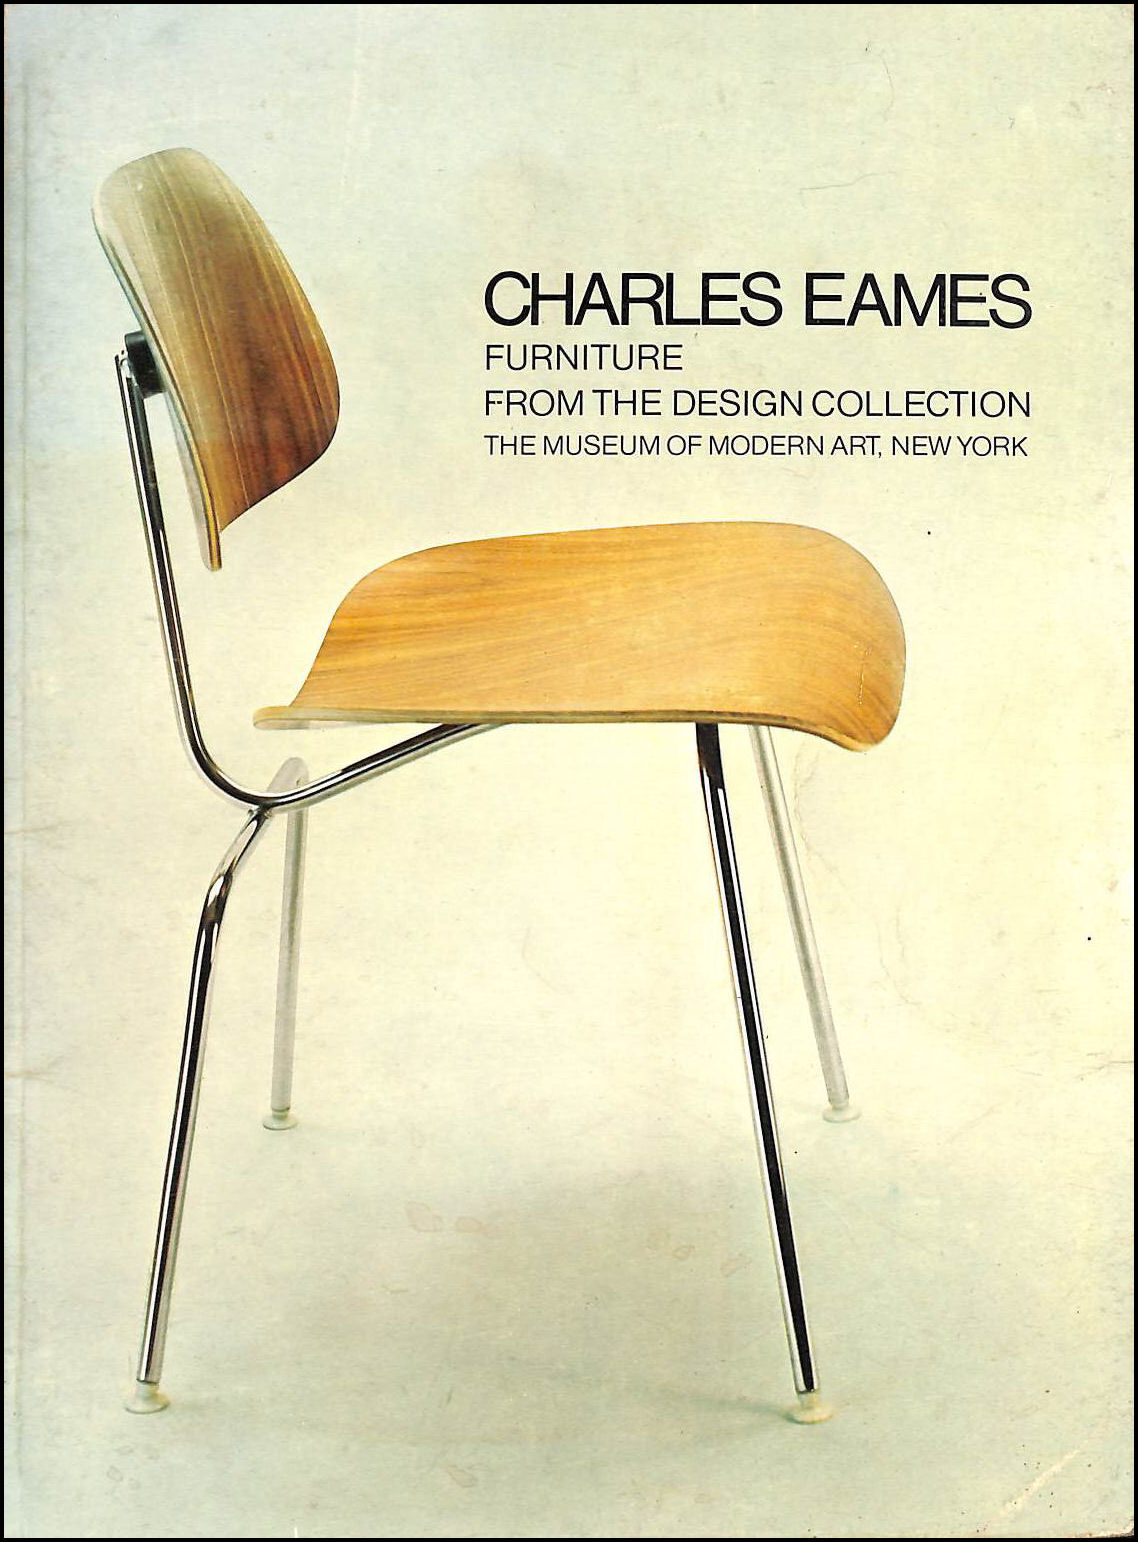 Charles Eames: Furniture from the Design Collection, Drexler, Arthur